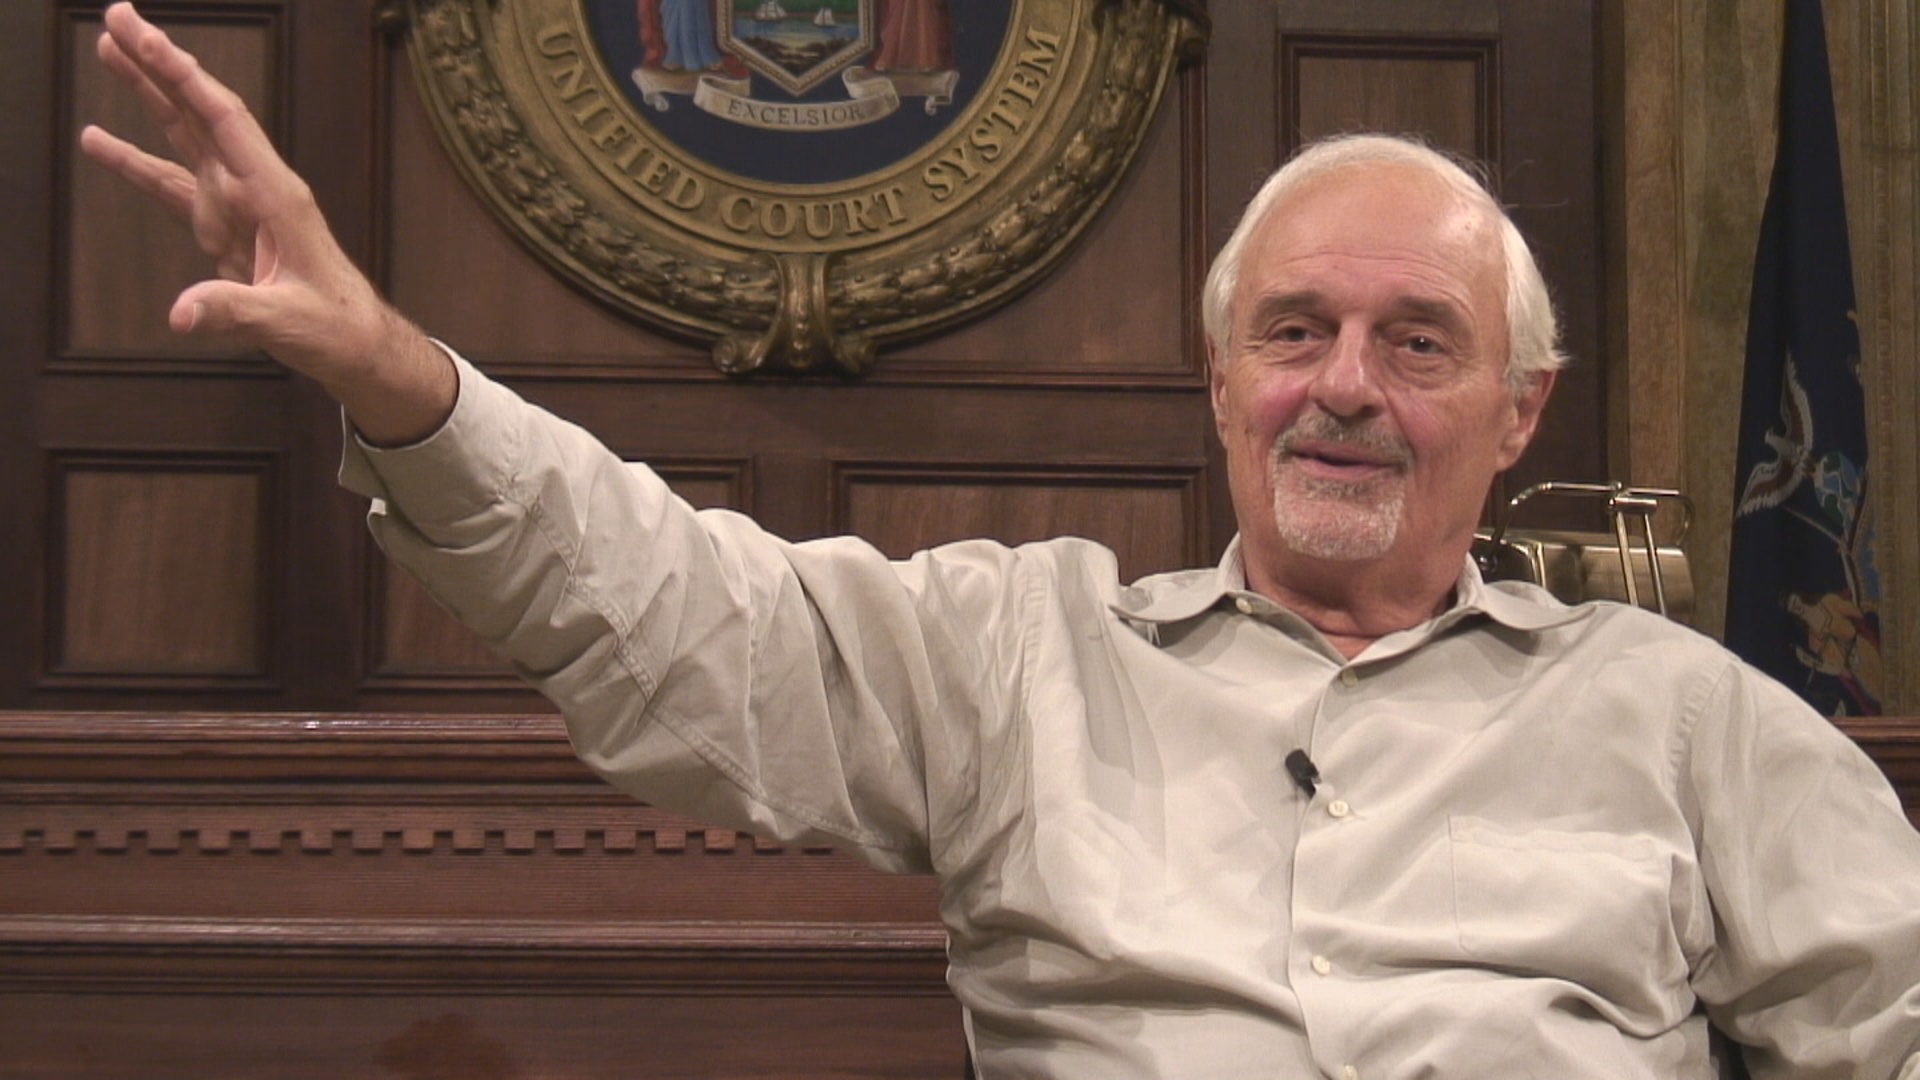 ted kotcheff interviewted kotcheff imdb, ted kotcheff movies, ted kotcheff interview, ted kotcheff net worth, ted kotcheff wake in fright, ted kotcheff book, ted kotcheff director, ted kotcheff wiki, ted kotcheff et micheline lanctot, ted kotcheff biography, ted kotcheff weekend at bernie's, ted kotcheff bulgarian, ted kotcheff first blood, ted kotcheff filmografia, ted kotcheff bulgaria, ted kotcheff 2015, ted kotcheff filmaffinity, ted kotcheff films, ted kotcheff contact, ted kotcheff facebook